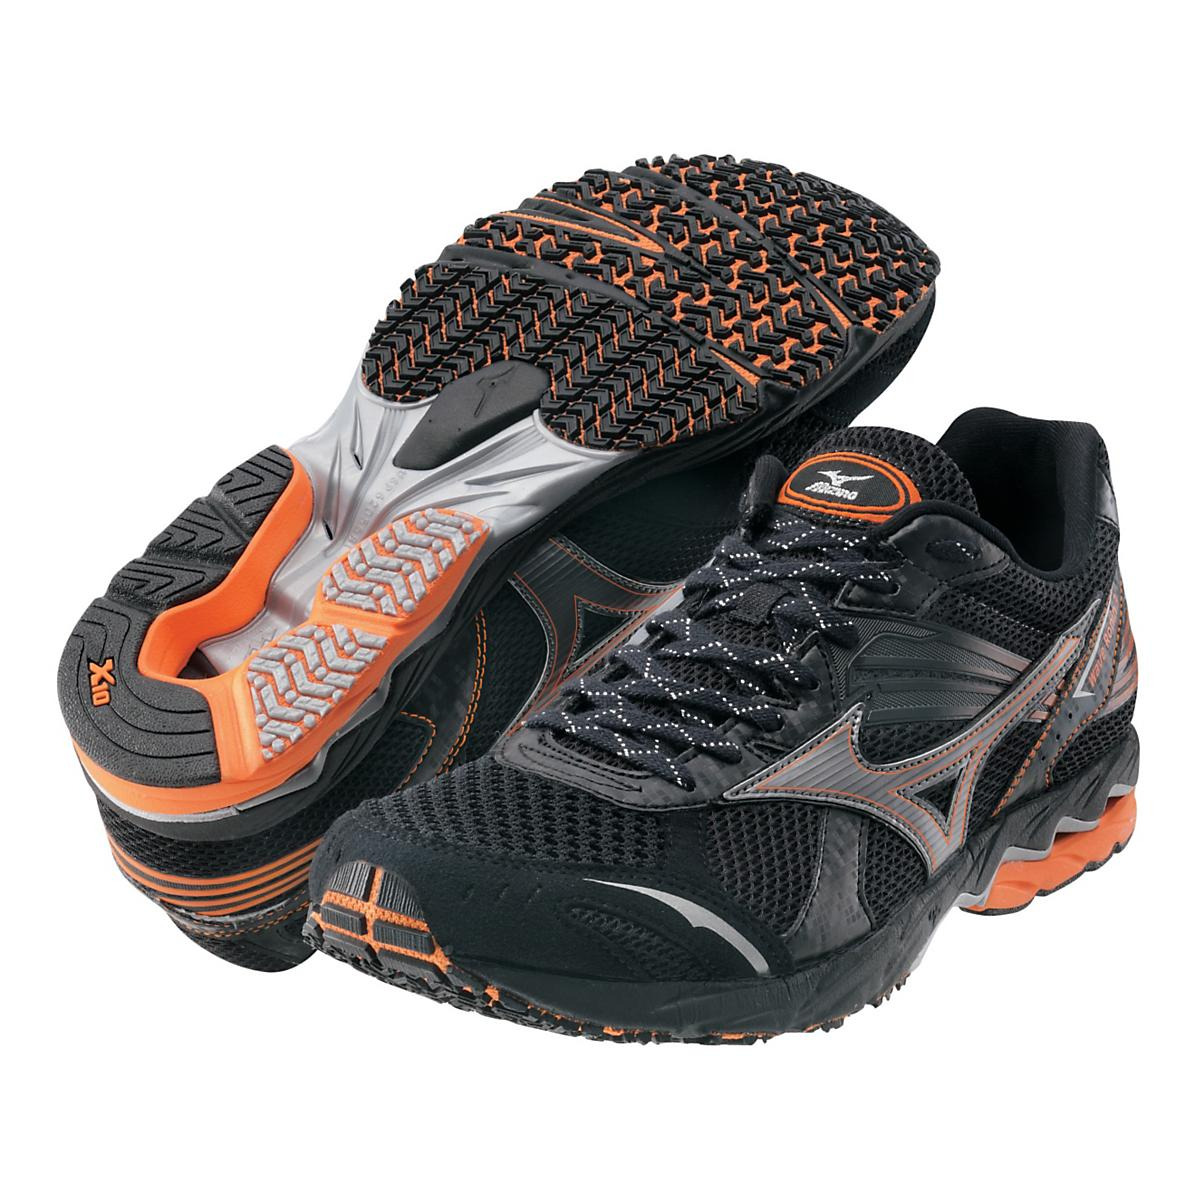 d986432dc8cb9 Mens Mizuno Wave Ronin 3 Racing Shoe at Road Runner Sports